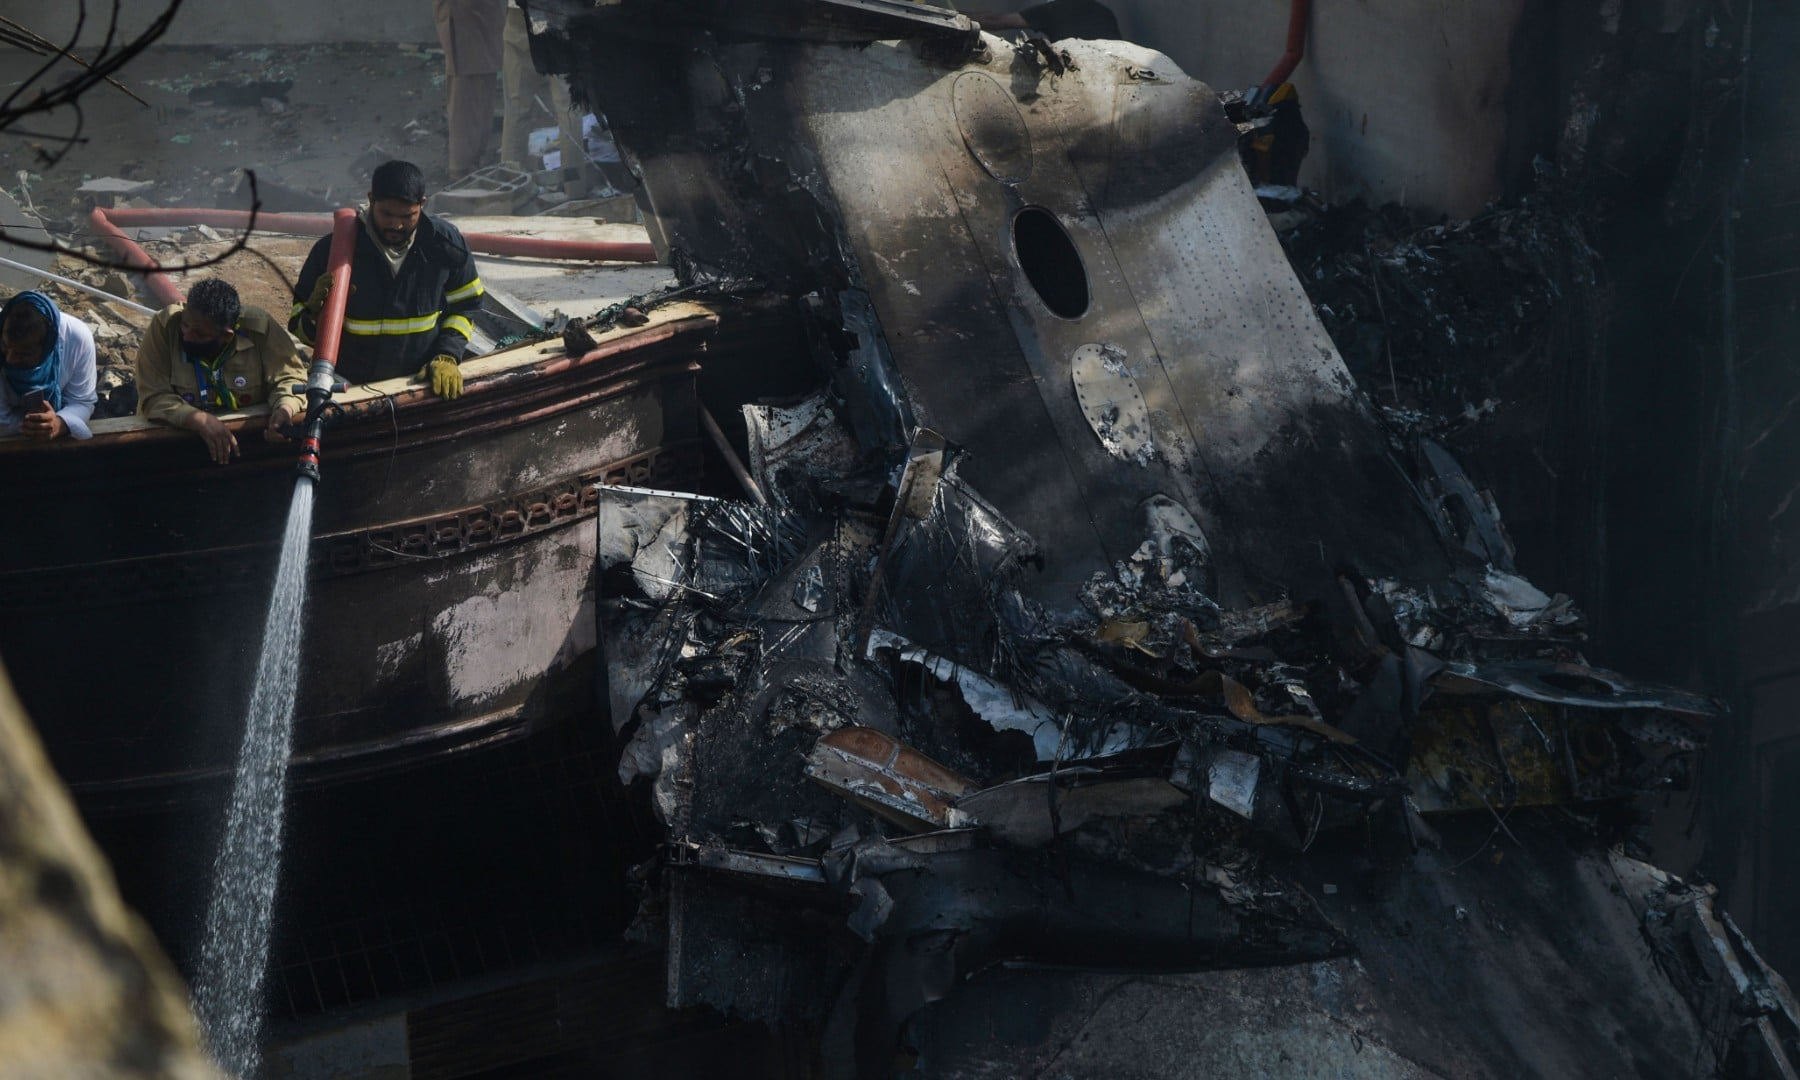 A firefighter sprays water on the wreckage of a Pakistan International Airlines aircraft after it crashed in a residential area in Karachi on May 22. — AFP